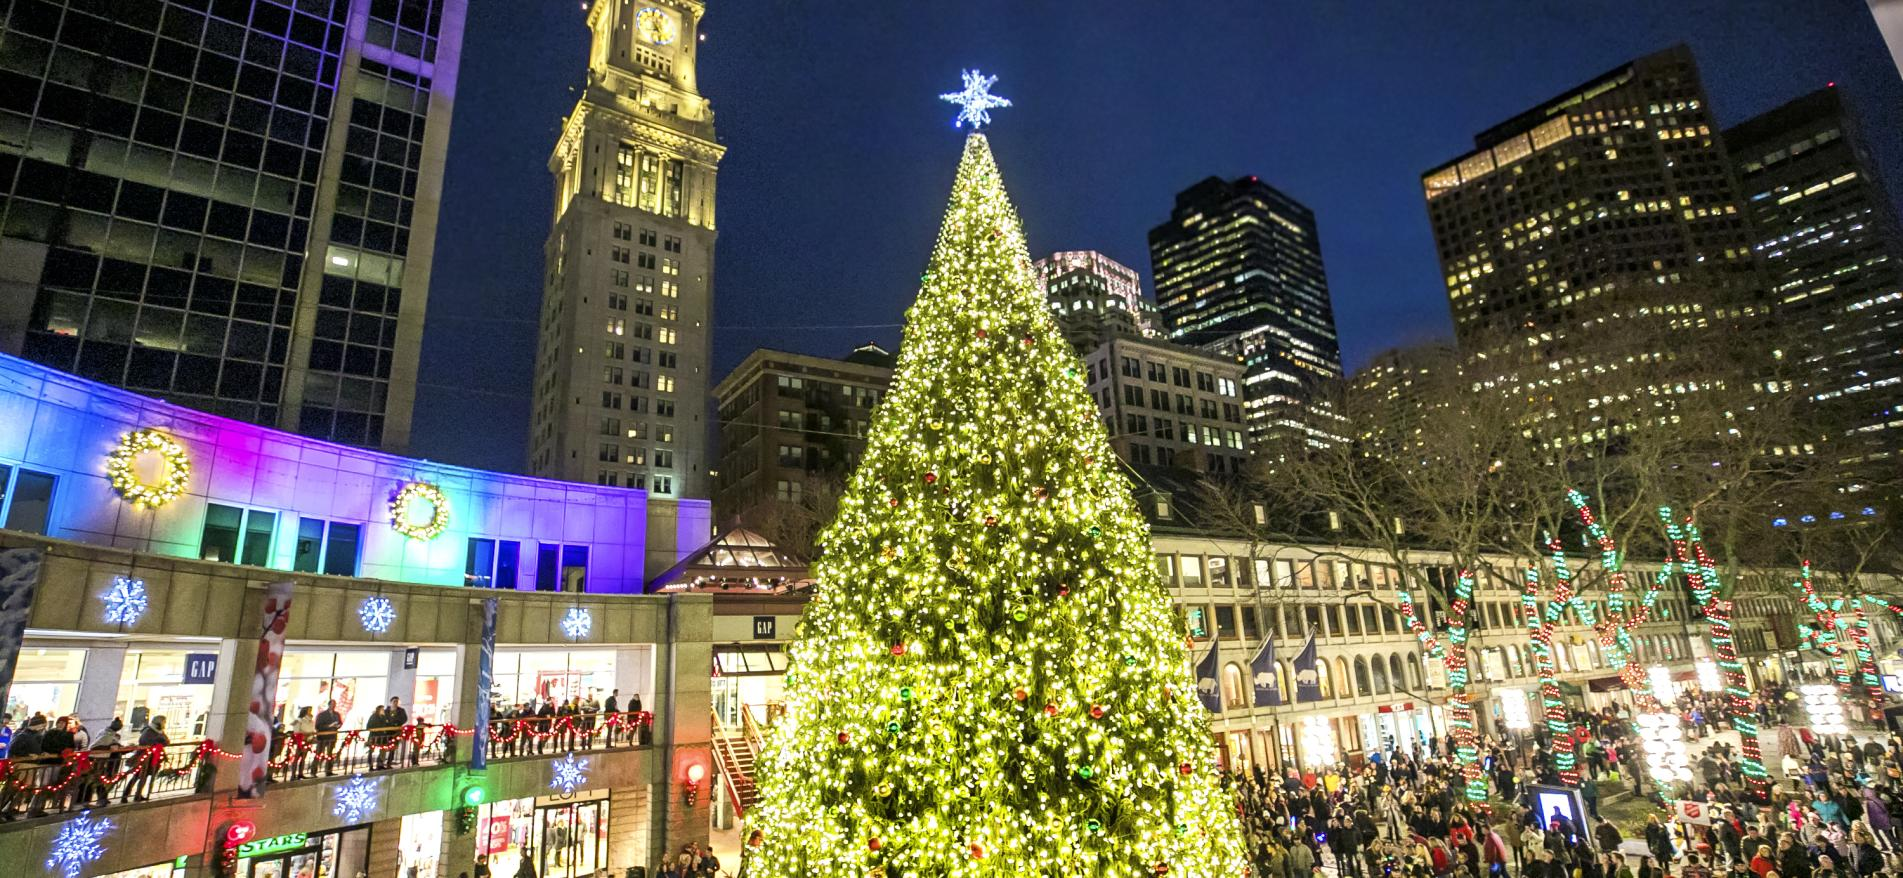 Volunteer Opportunities Boston Christmas Day 2020 Boston's Holiday Season | Christmas and NYE Events